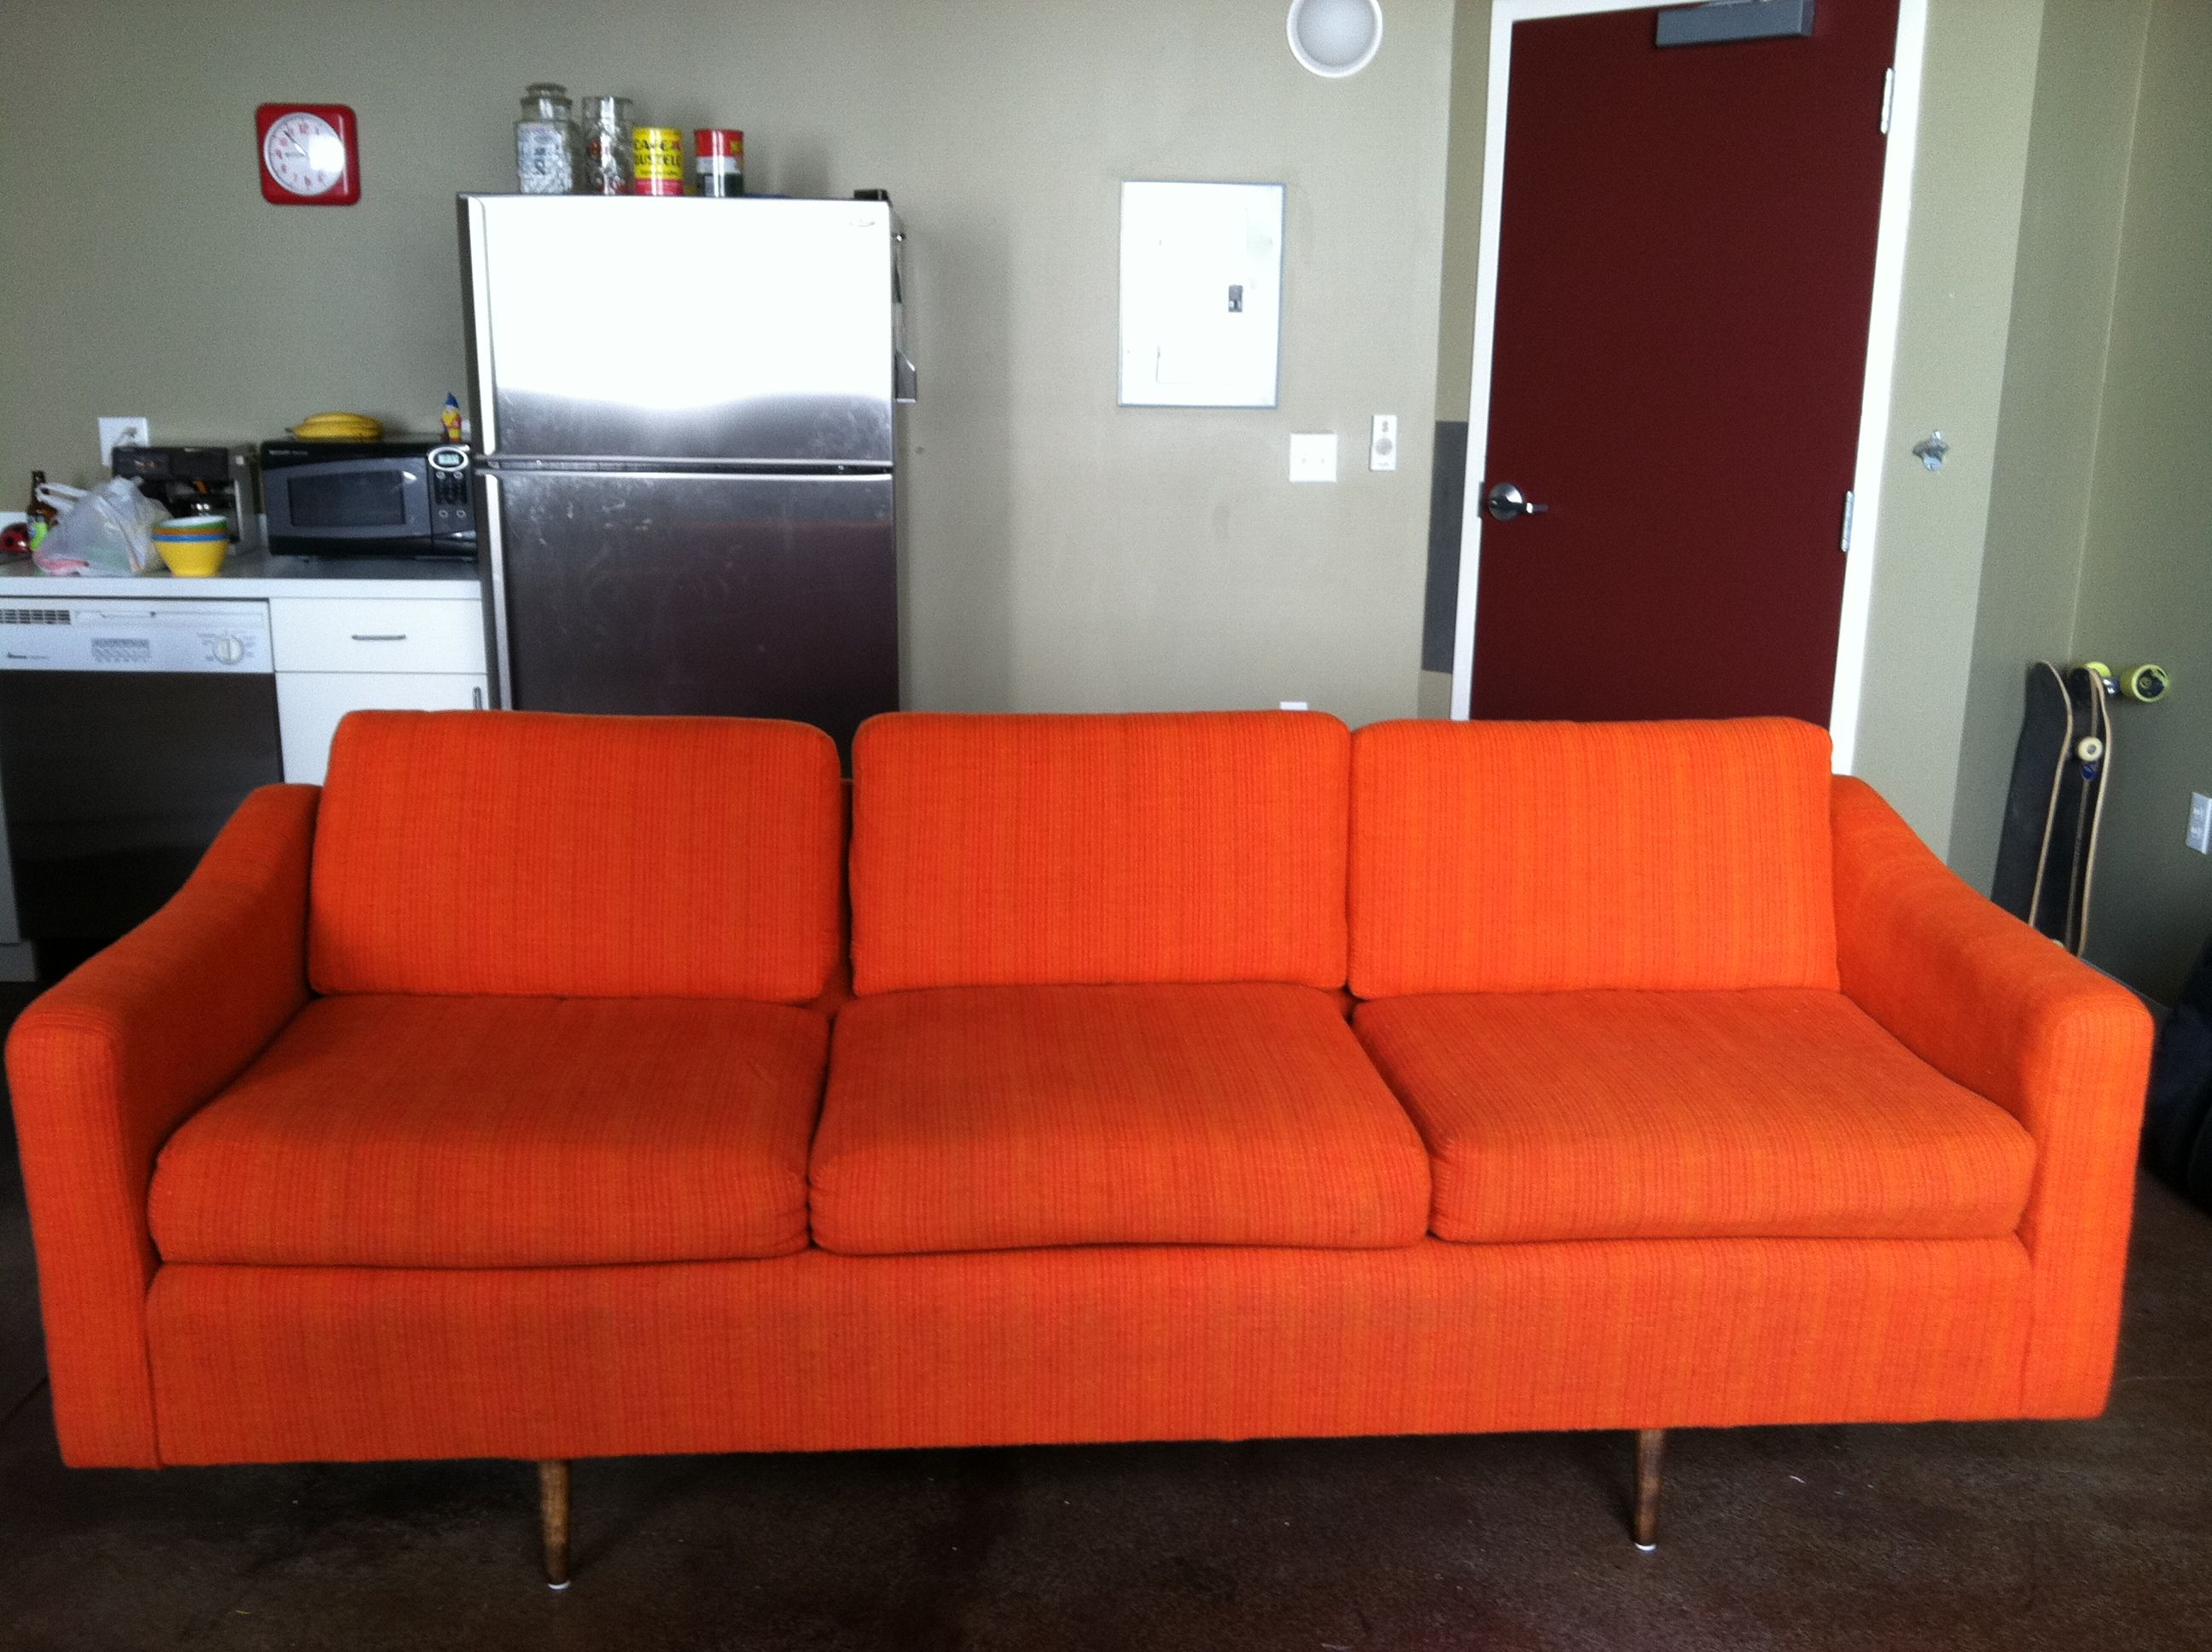 cornered on craig's list: the story of my bright orange couch